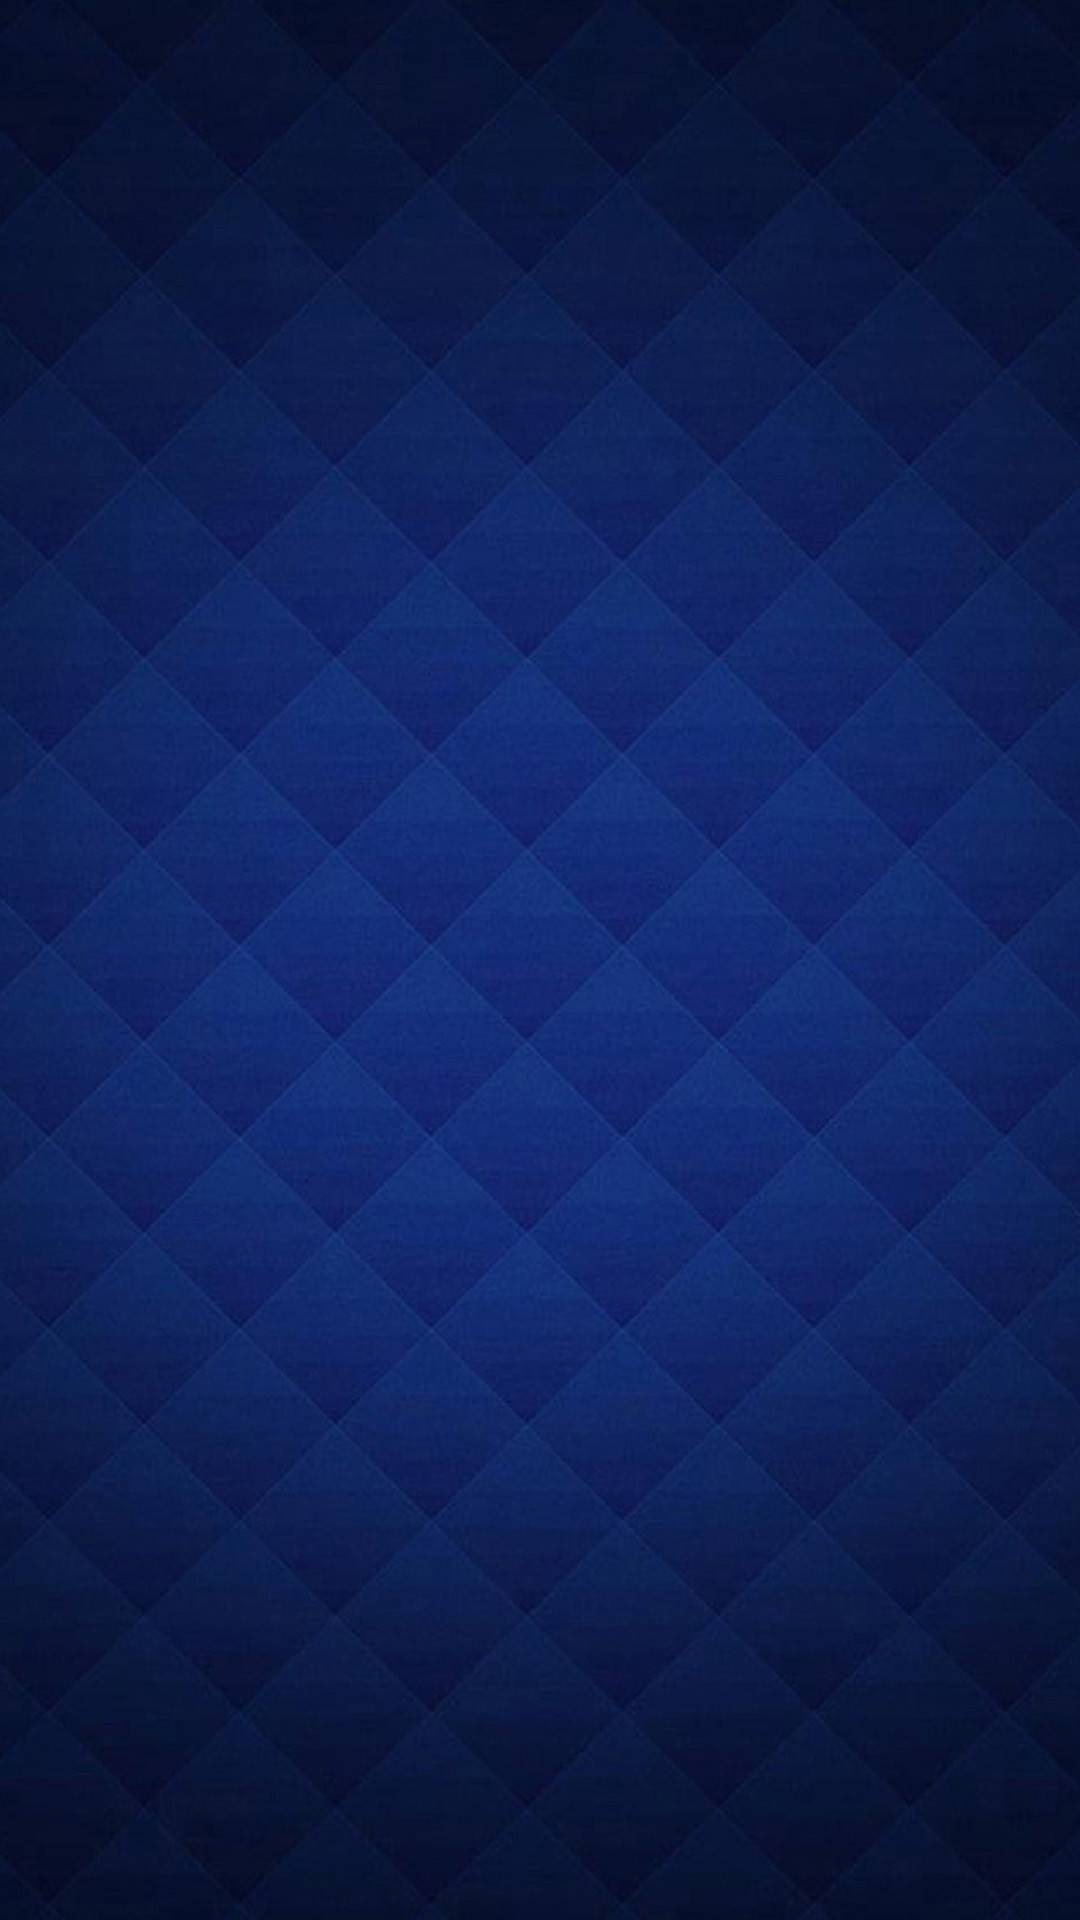 Light <b>Blue Texture</b> Wallpaper – WallpaperSafari